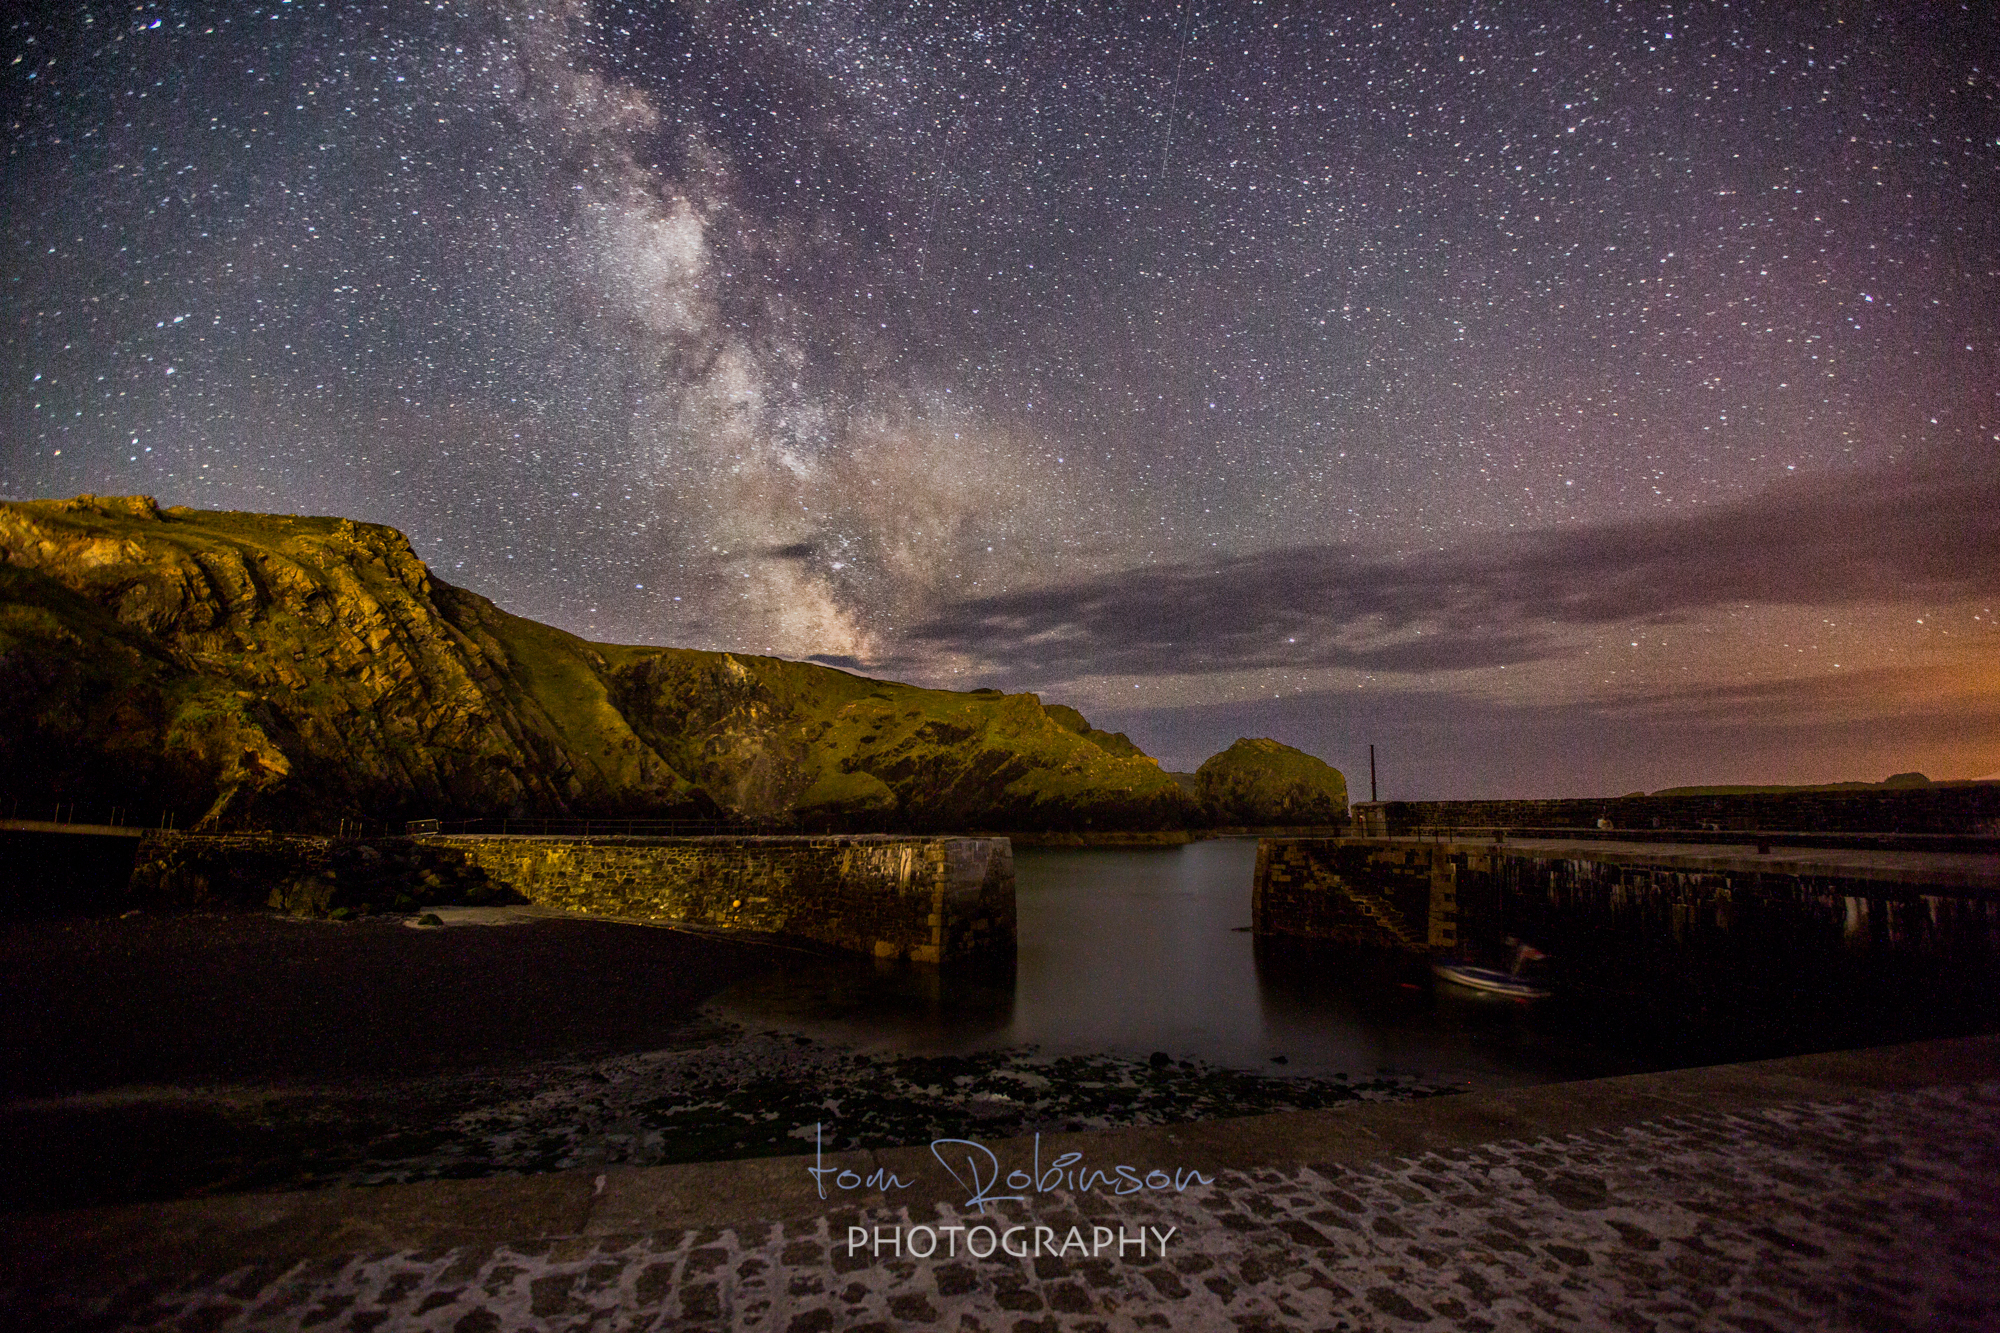 Mullion cove by night from the Cornwall by night collection by Tom Robinson Photography